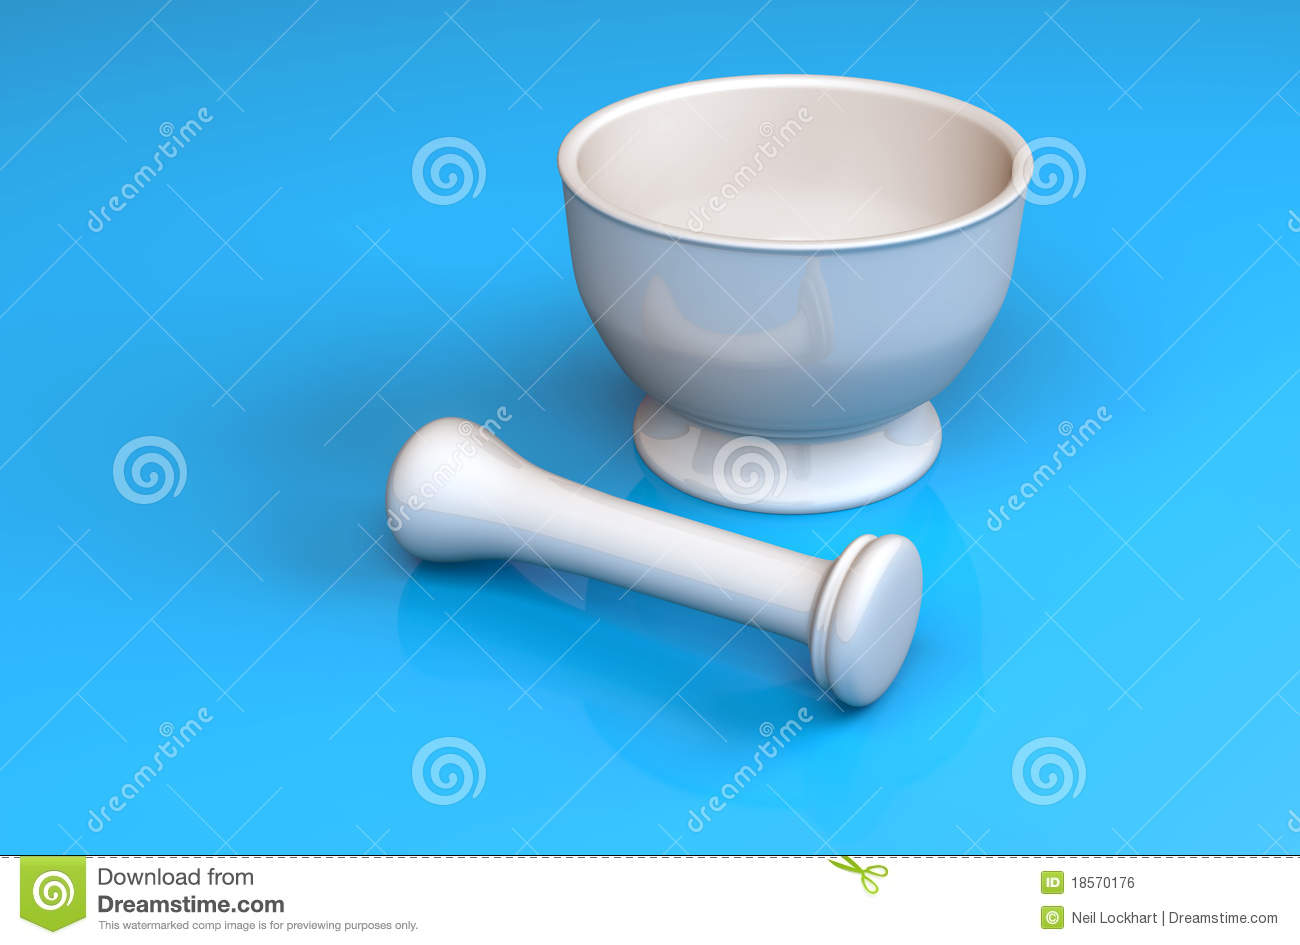 Mortarpestle